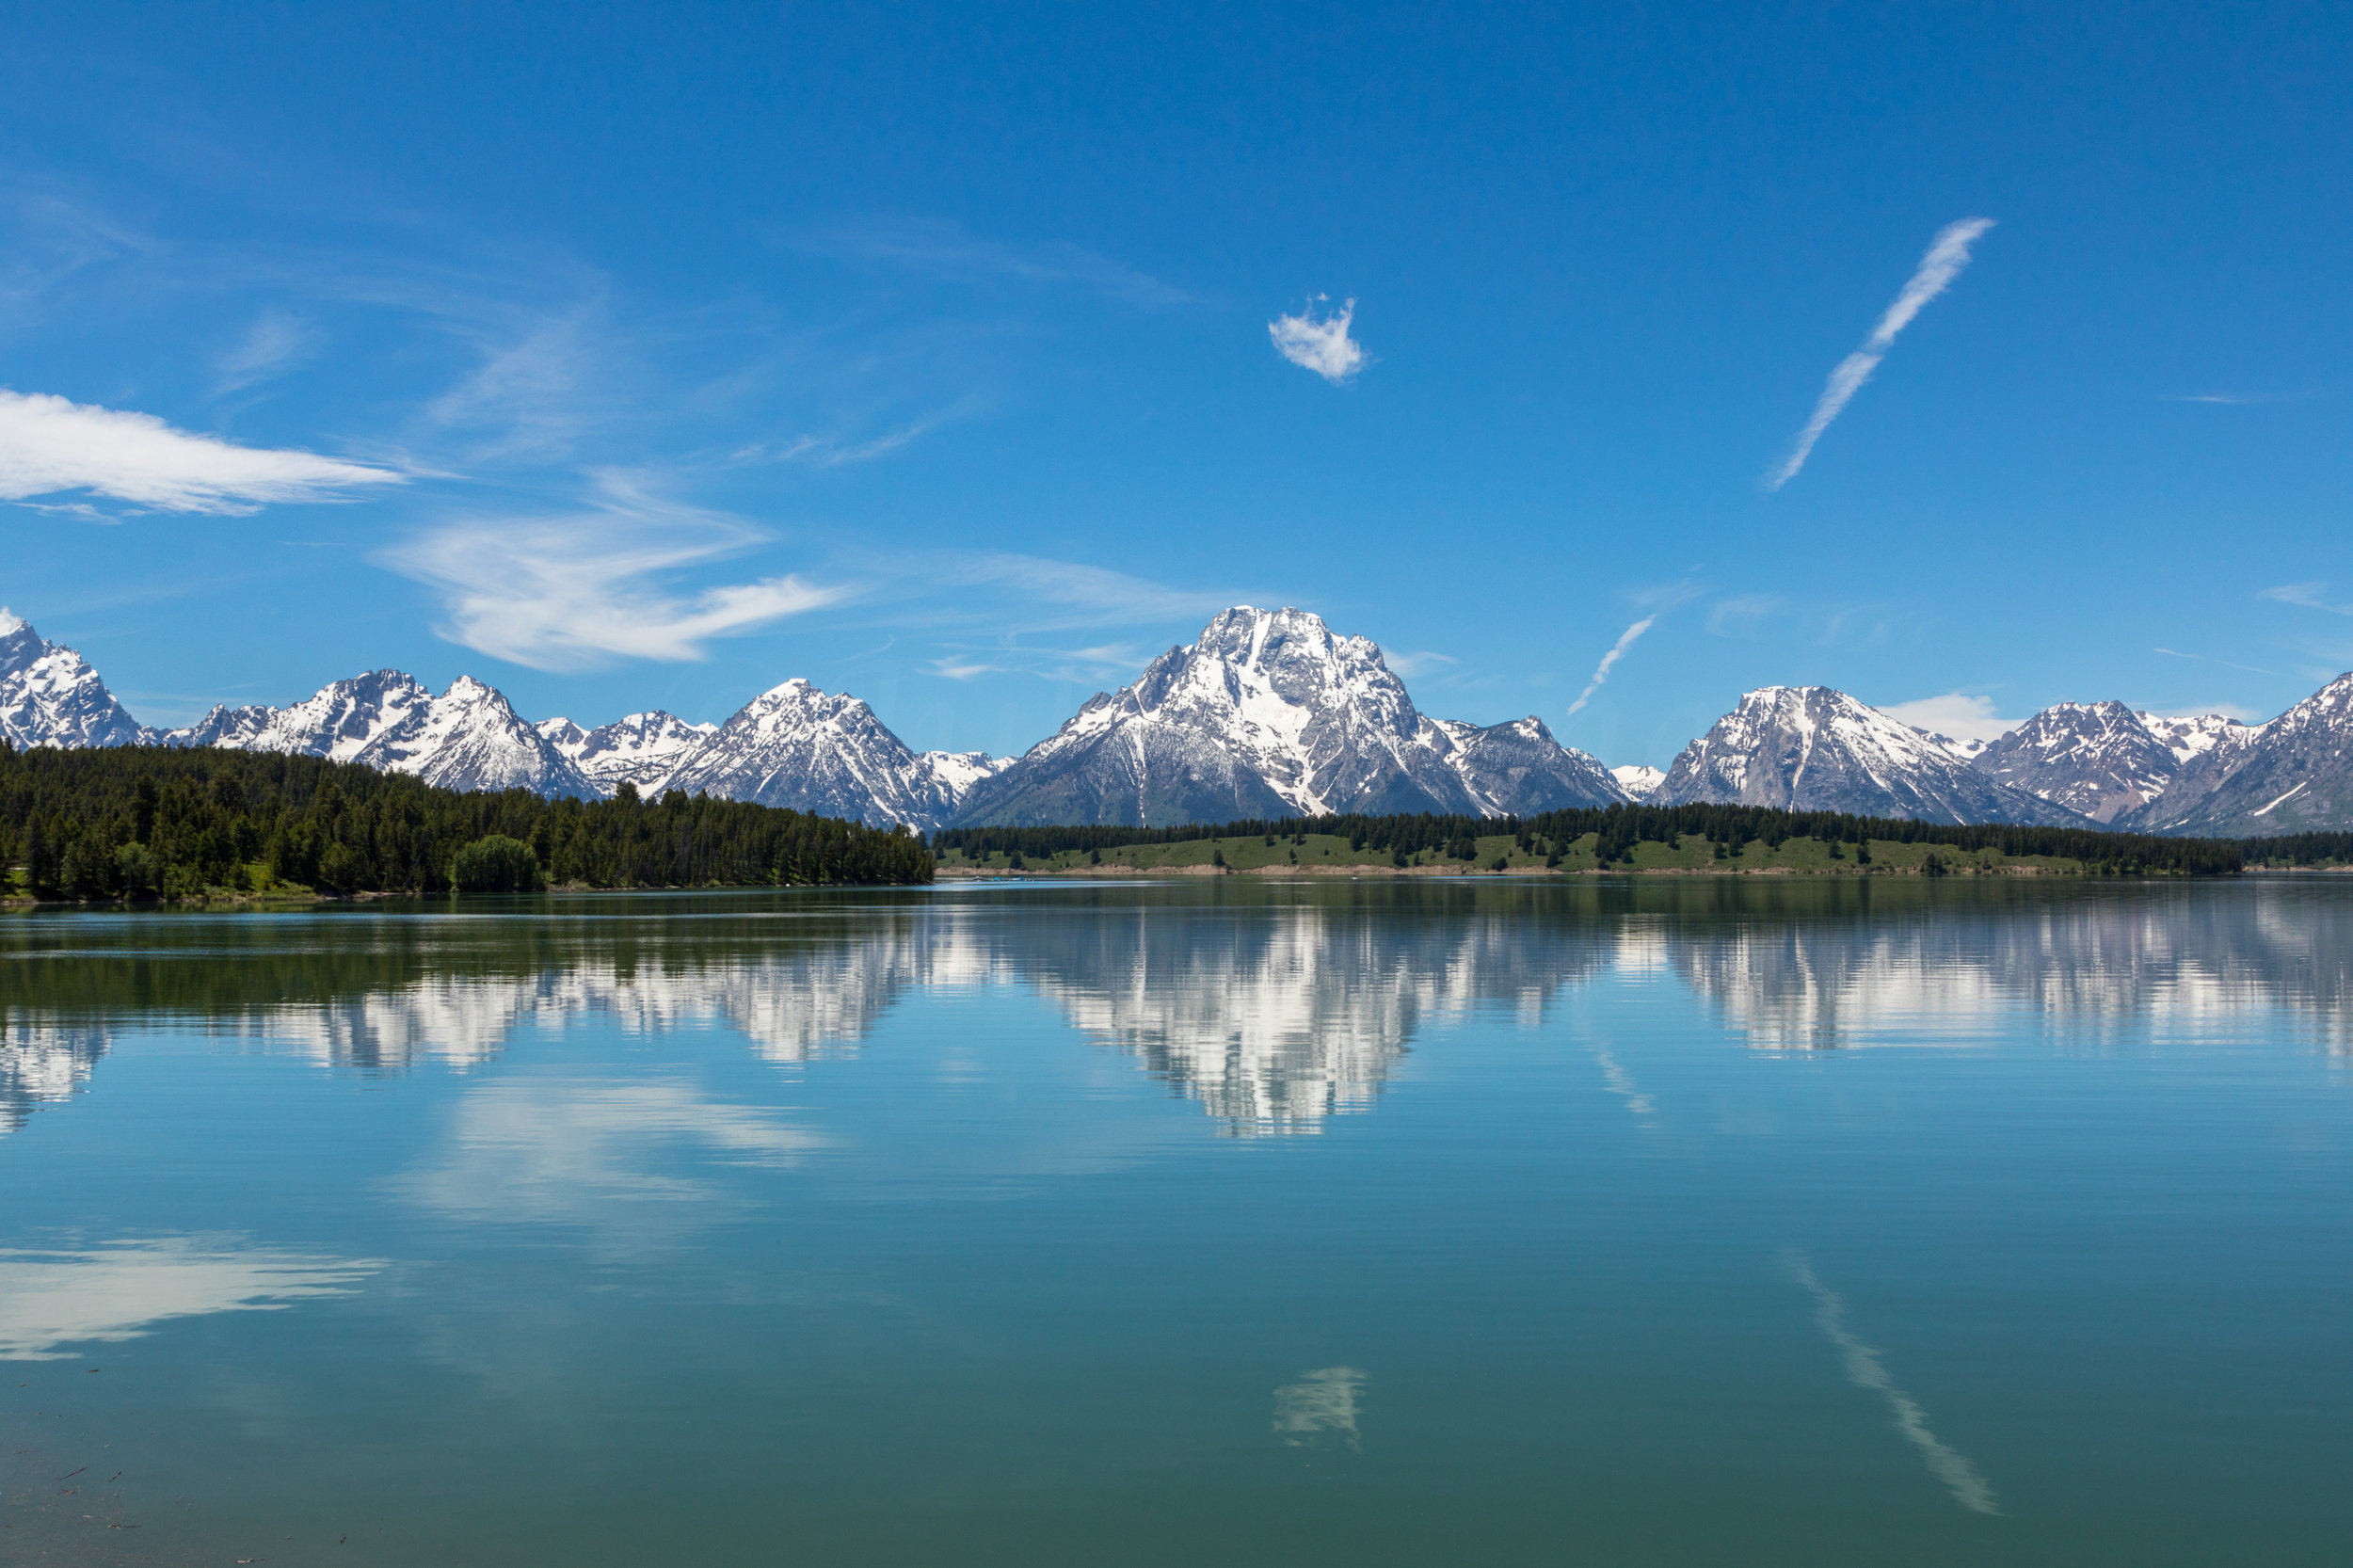 Reflection of Mount Moran in Jackson Lake, Image # 2532